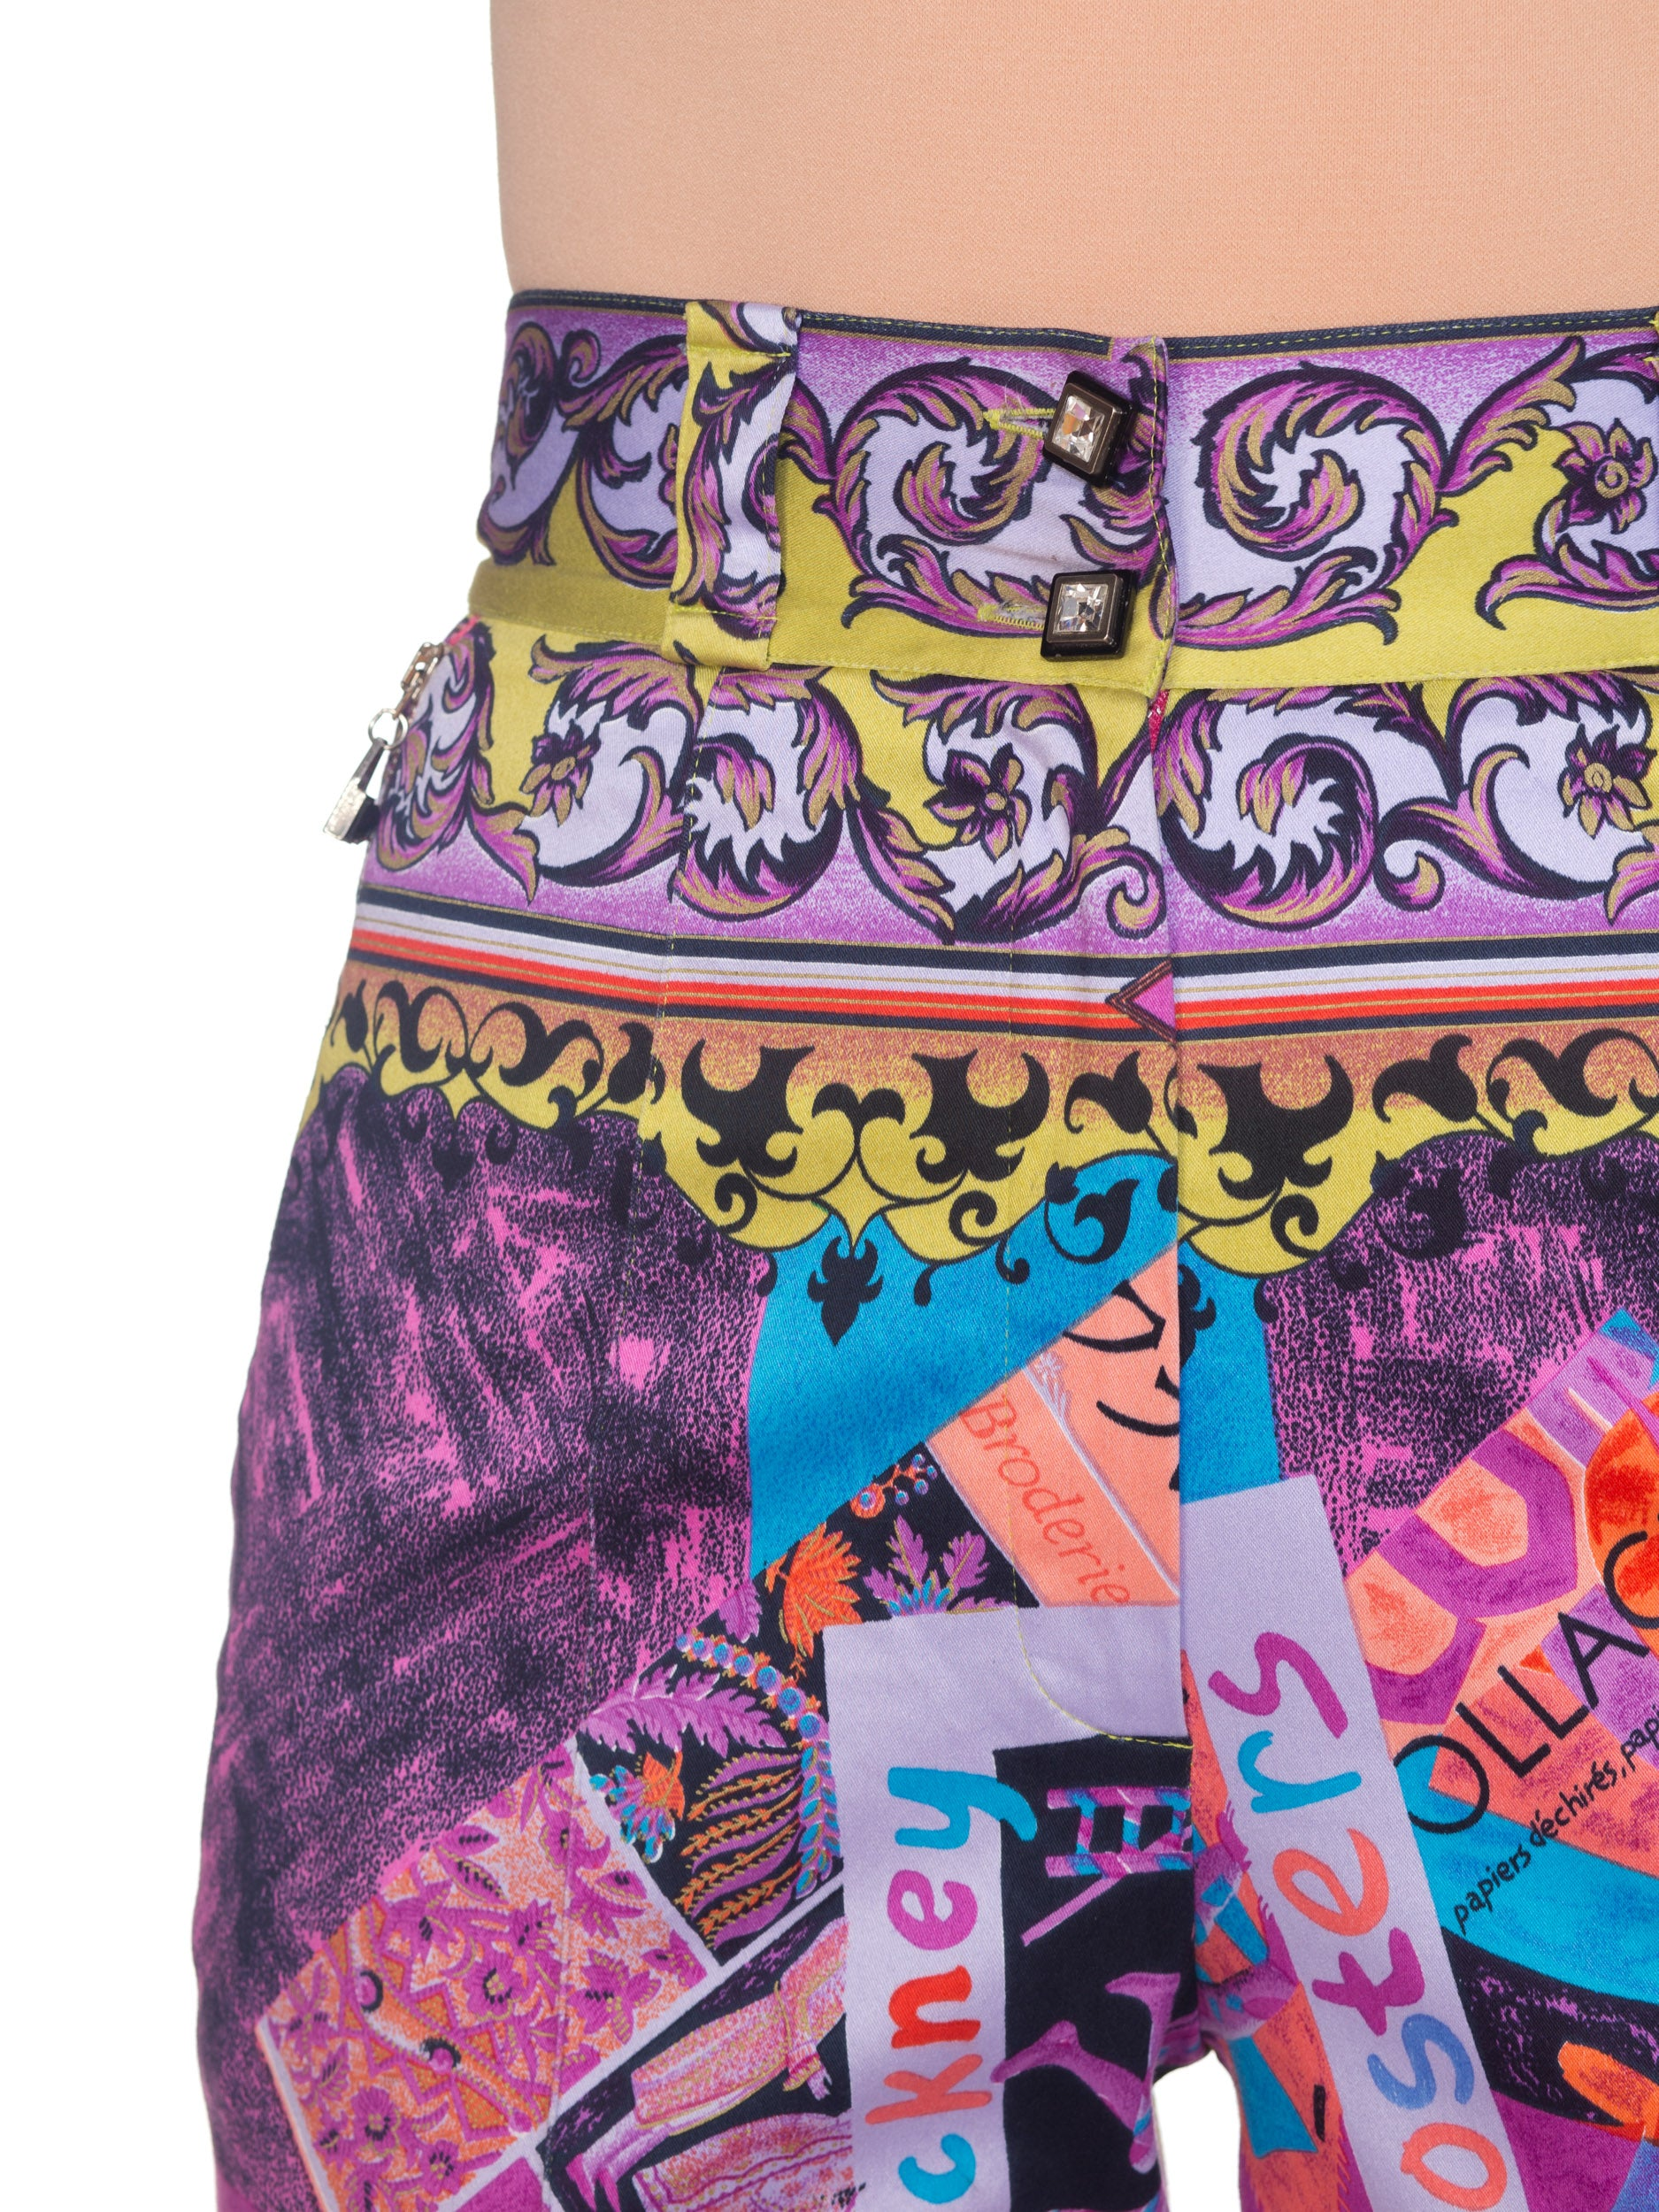 Gianni Versace Spring 1991 Picasso Hockney Artist Print Pants